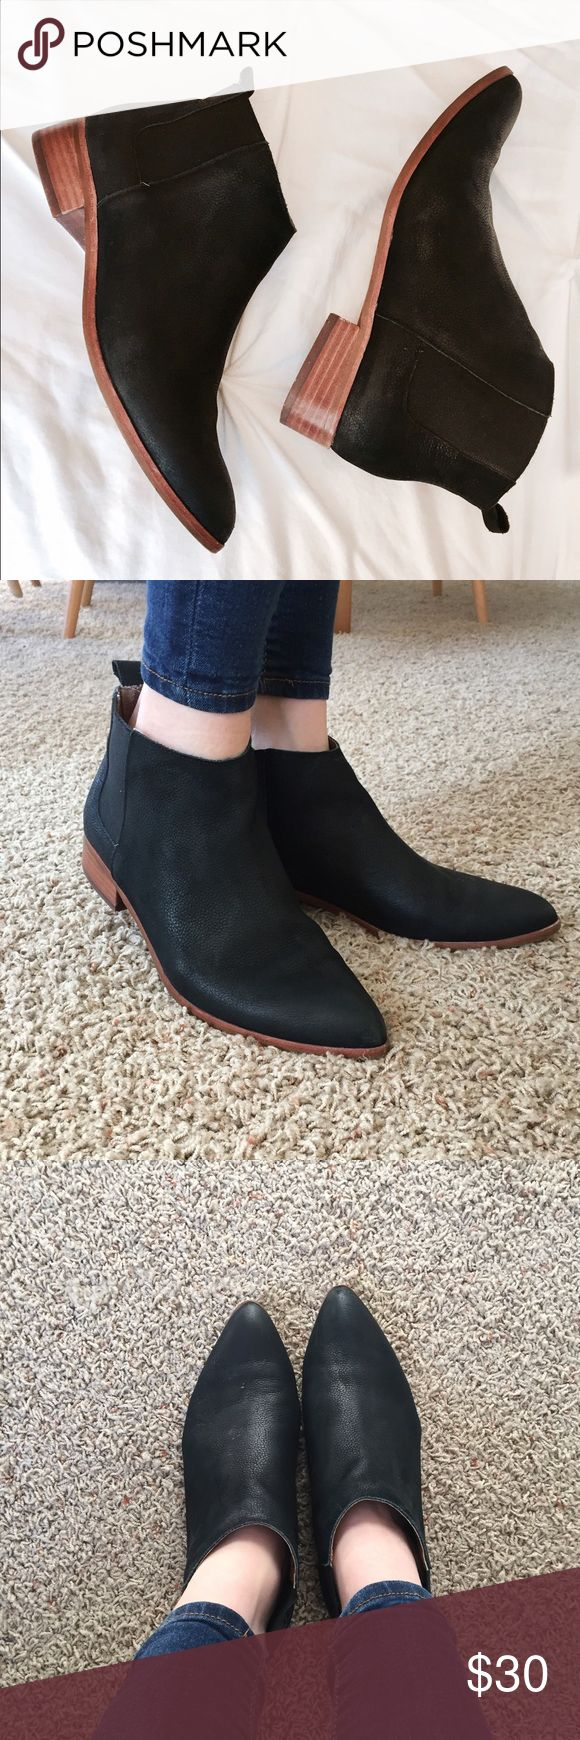 Gap Matte Black Bootie Super adorable low heel matte black Gap booties. These are slightly worn, but still in amazing condition. They're genuine leather, and fit closer to a 6.5. Look super cute when paired with some skinnies! GAP Shoes Ankle Boots & Booties